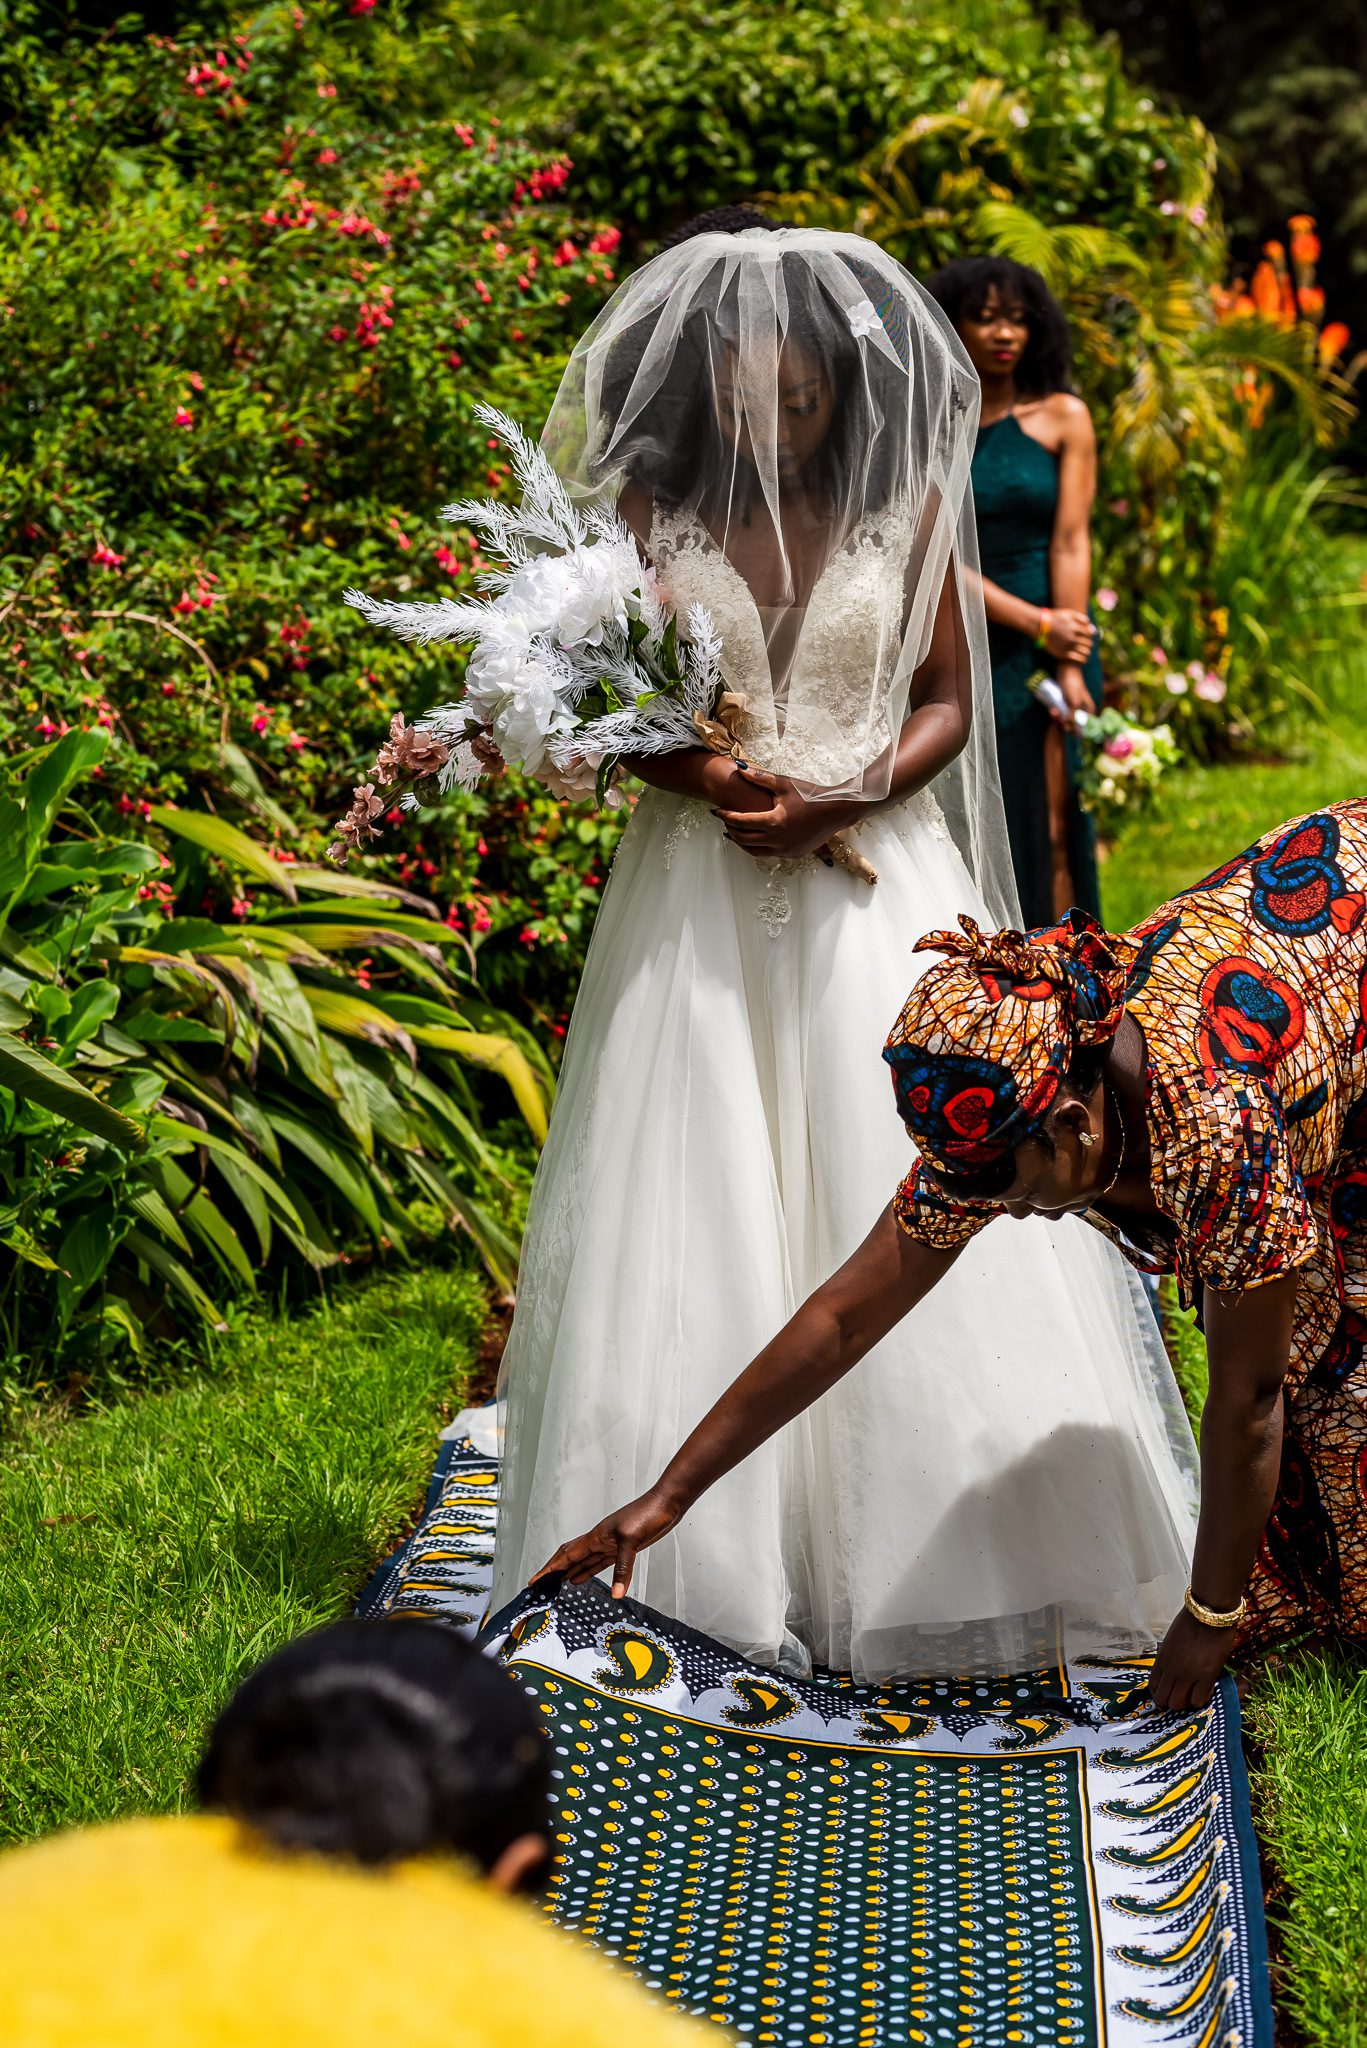 a woman lays a cloth down on the ground in front of a bride before she walks down the isle